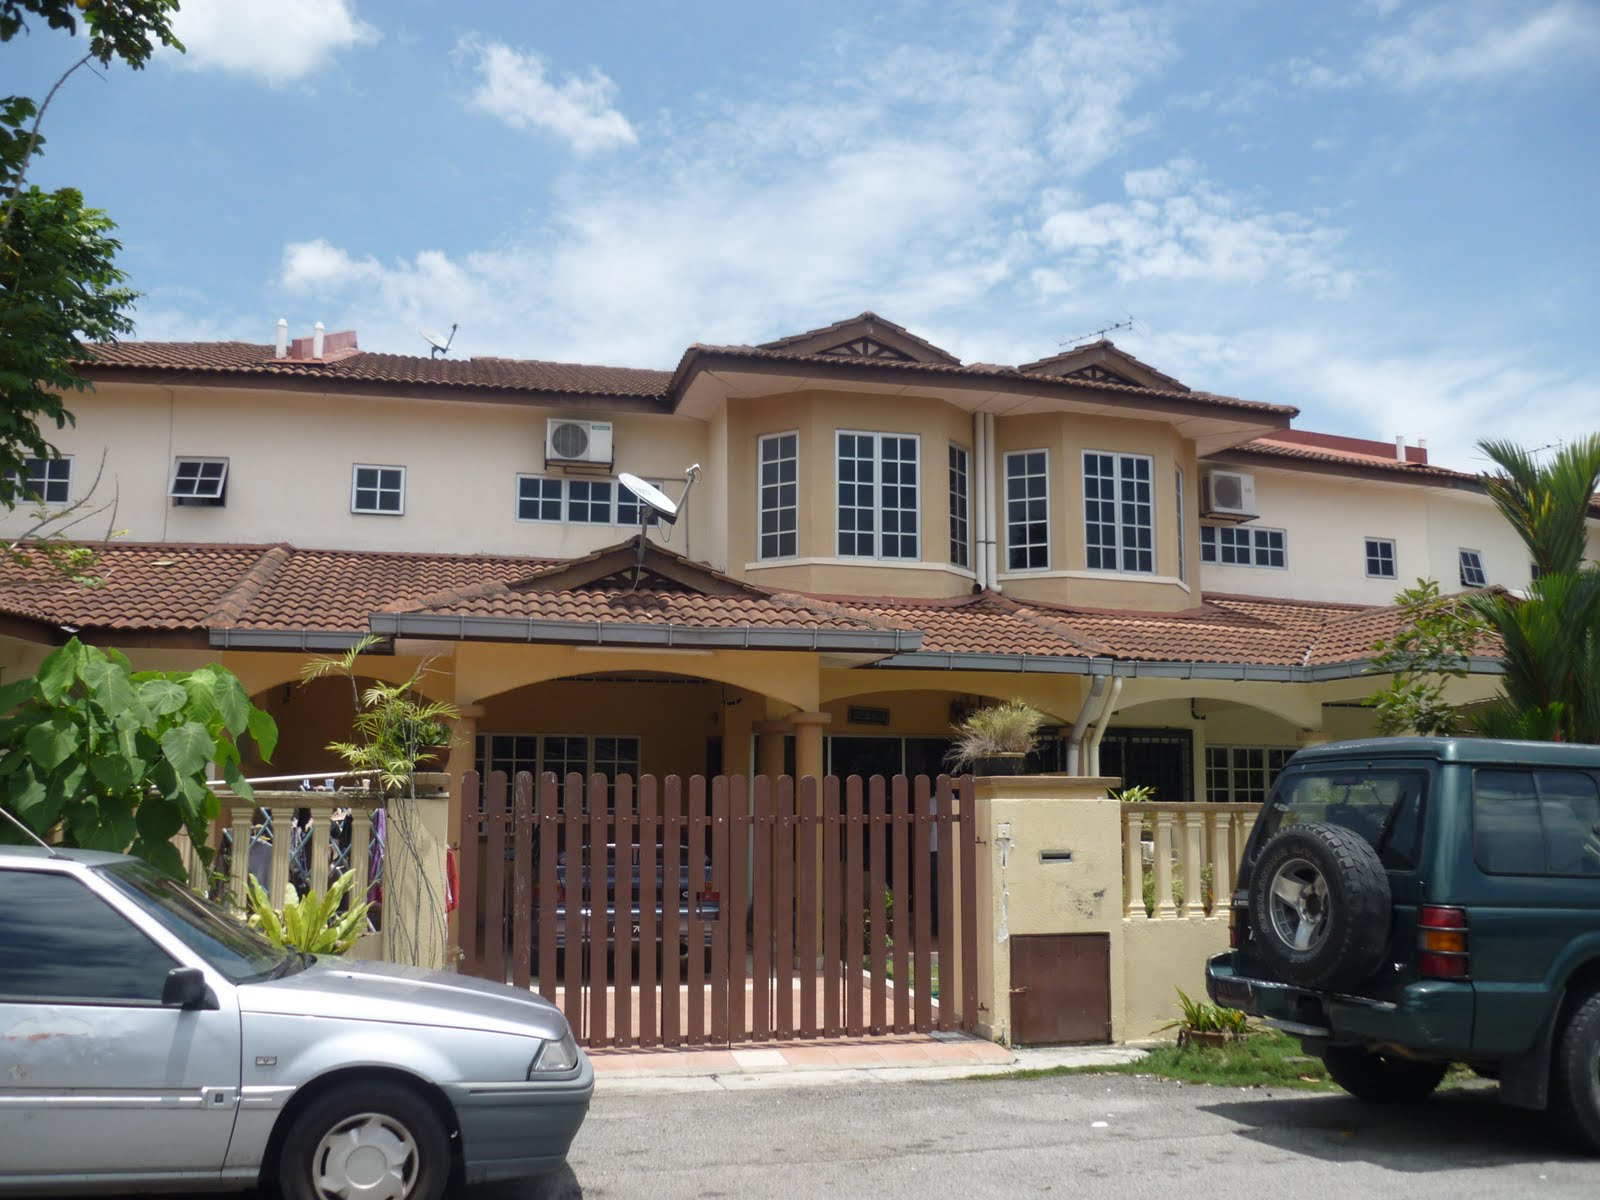 Double storey terrace house for sale for sale for 3 storey terrace house for sale